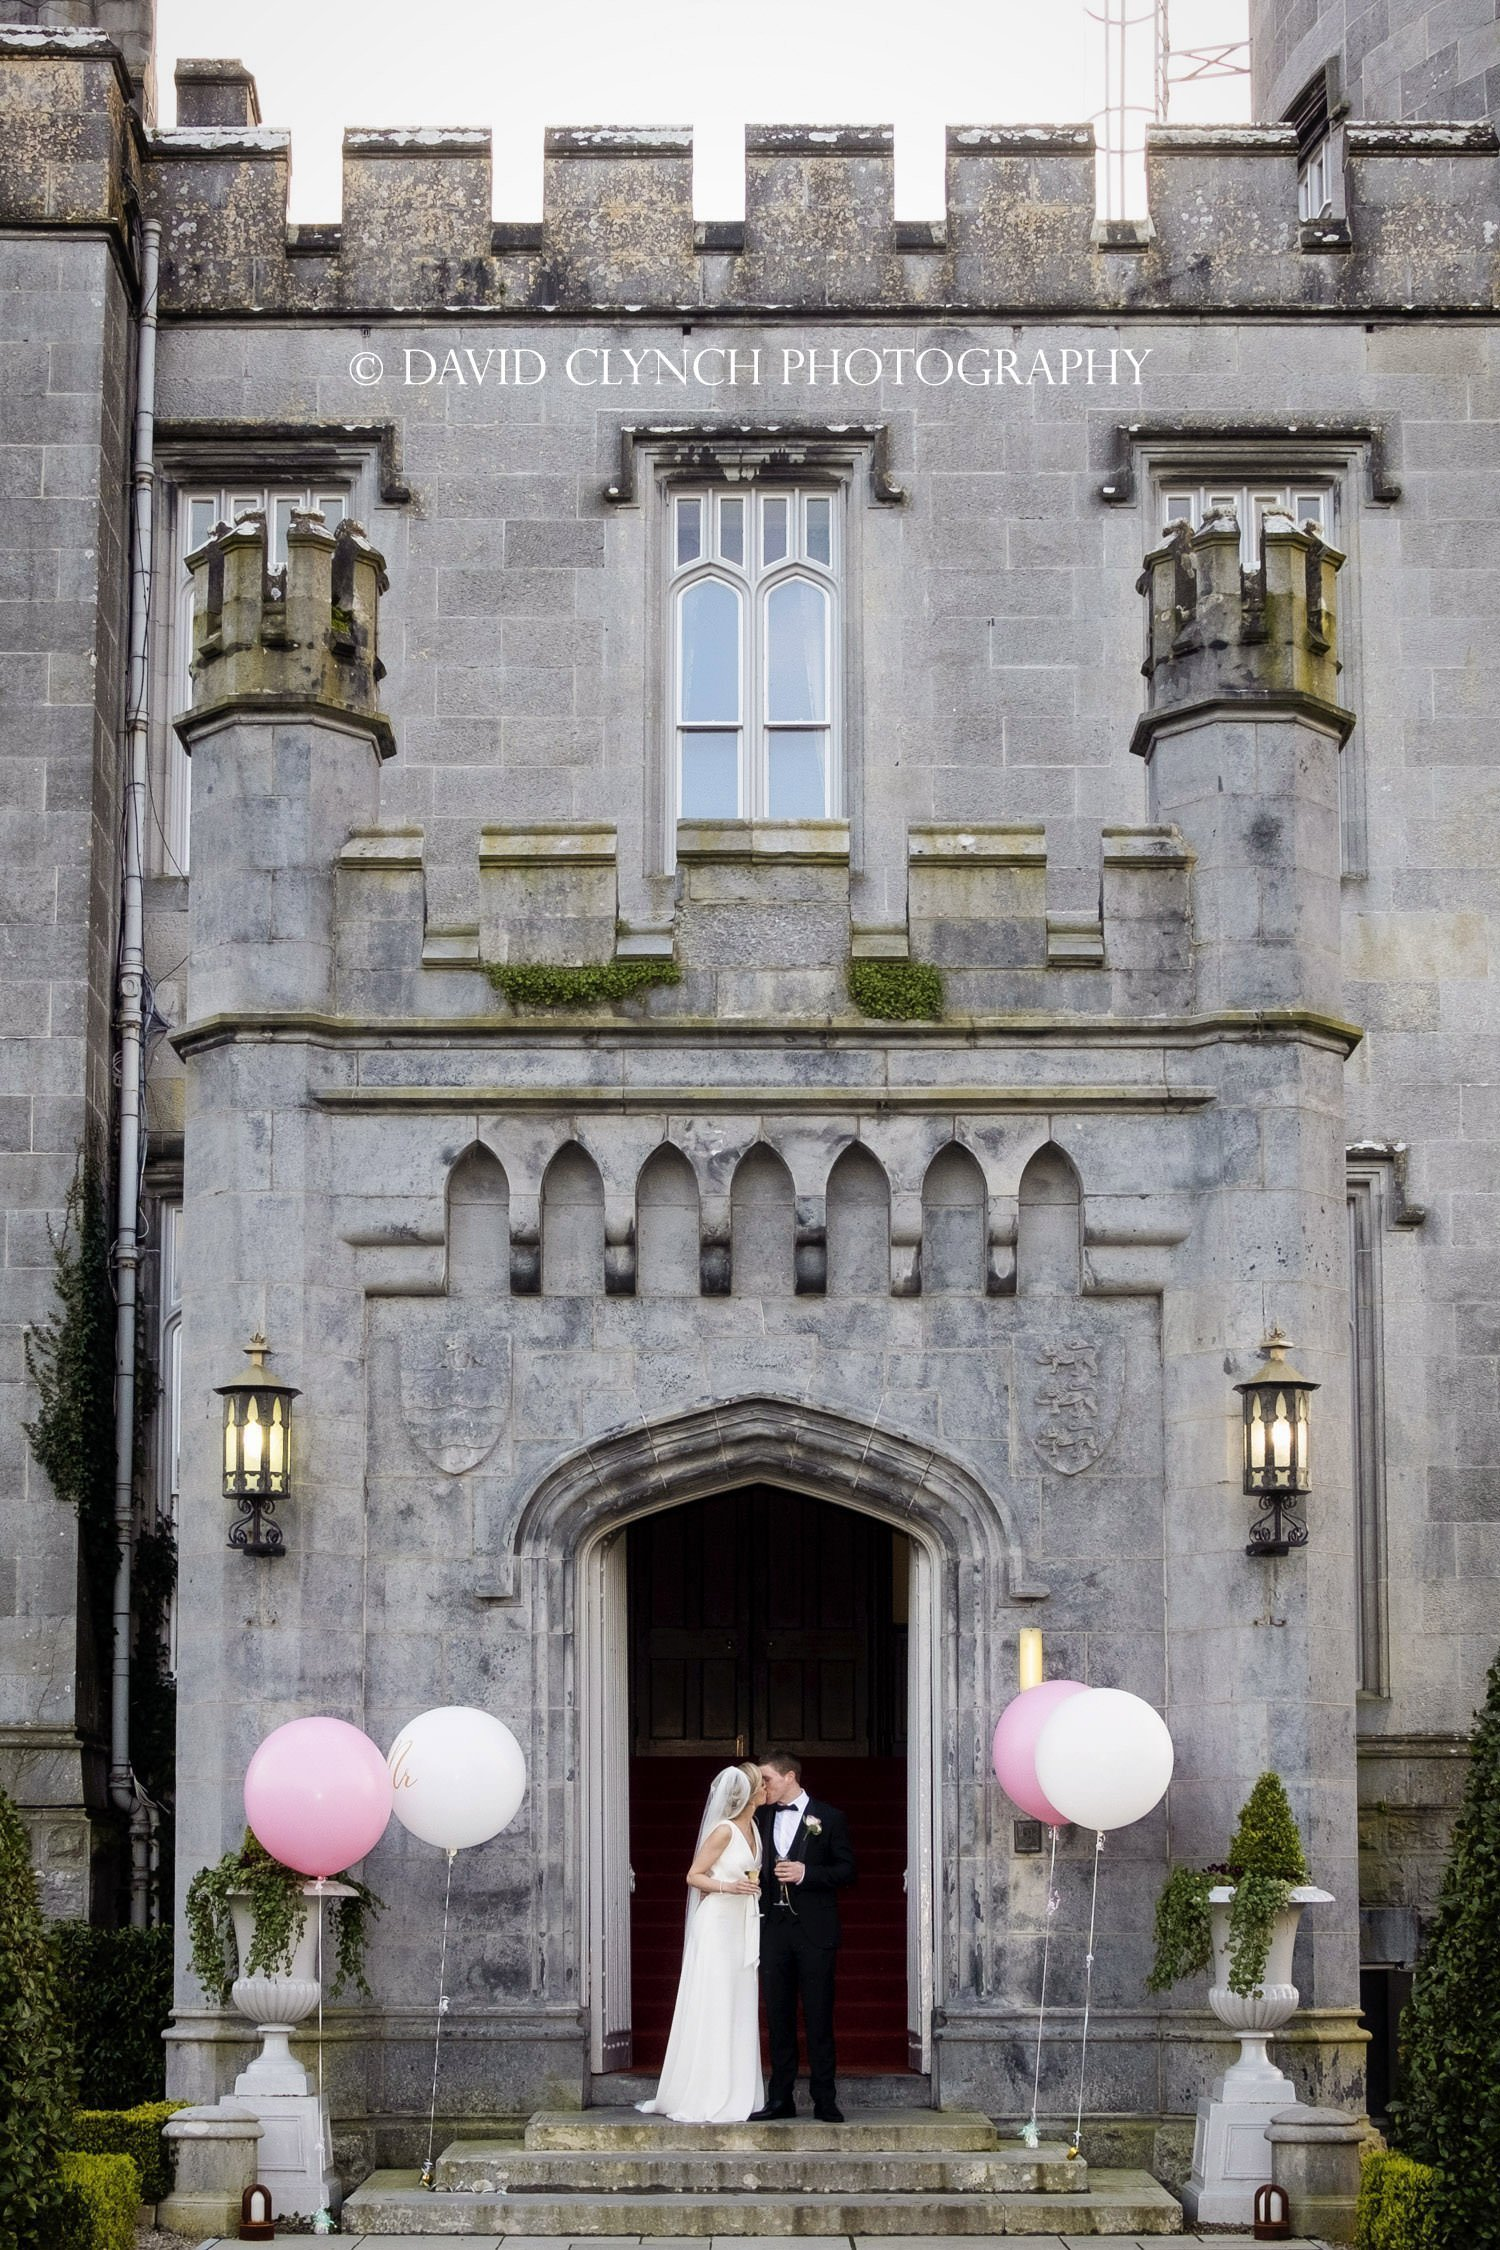 Wedding Photography Dromoland Castle Clare Ireland